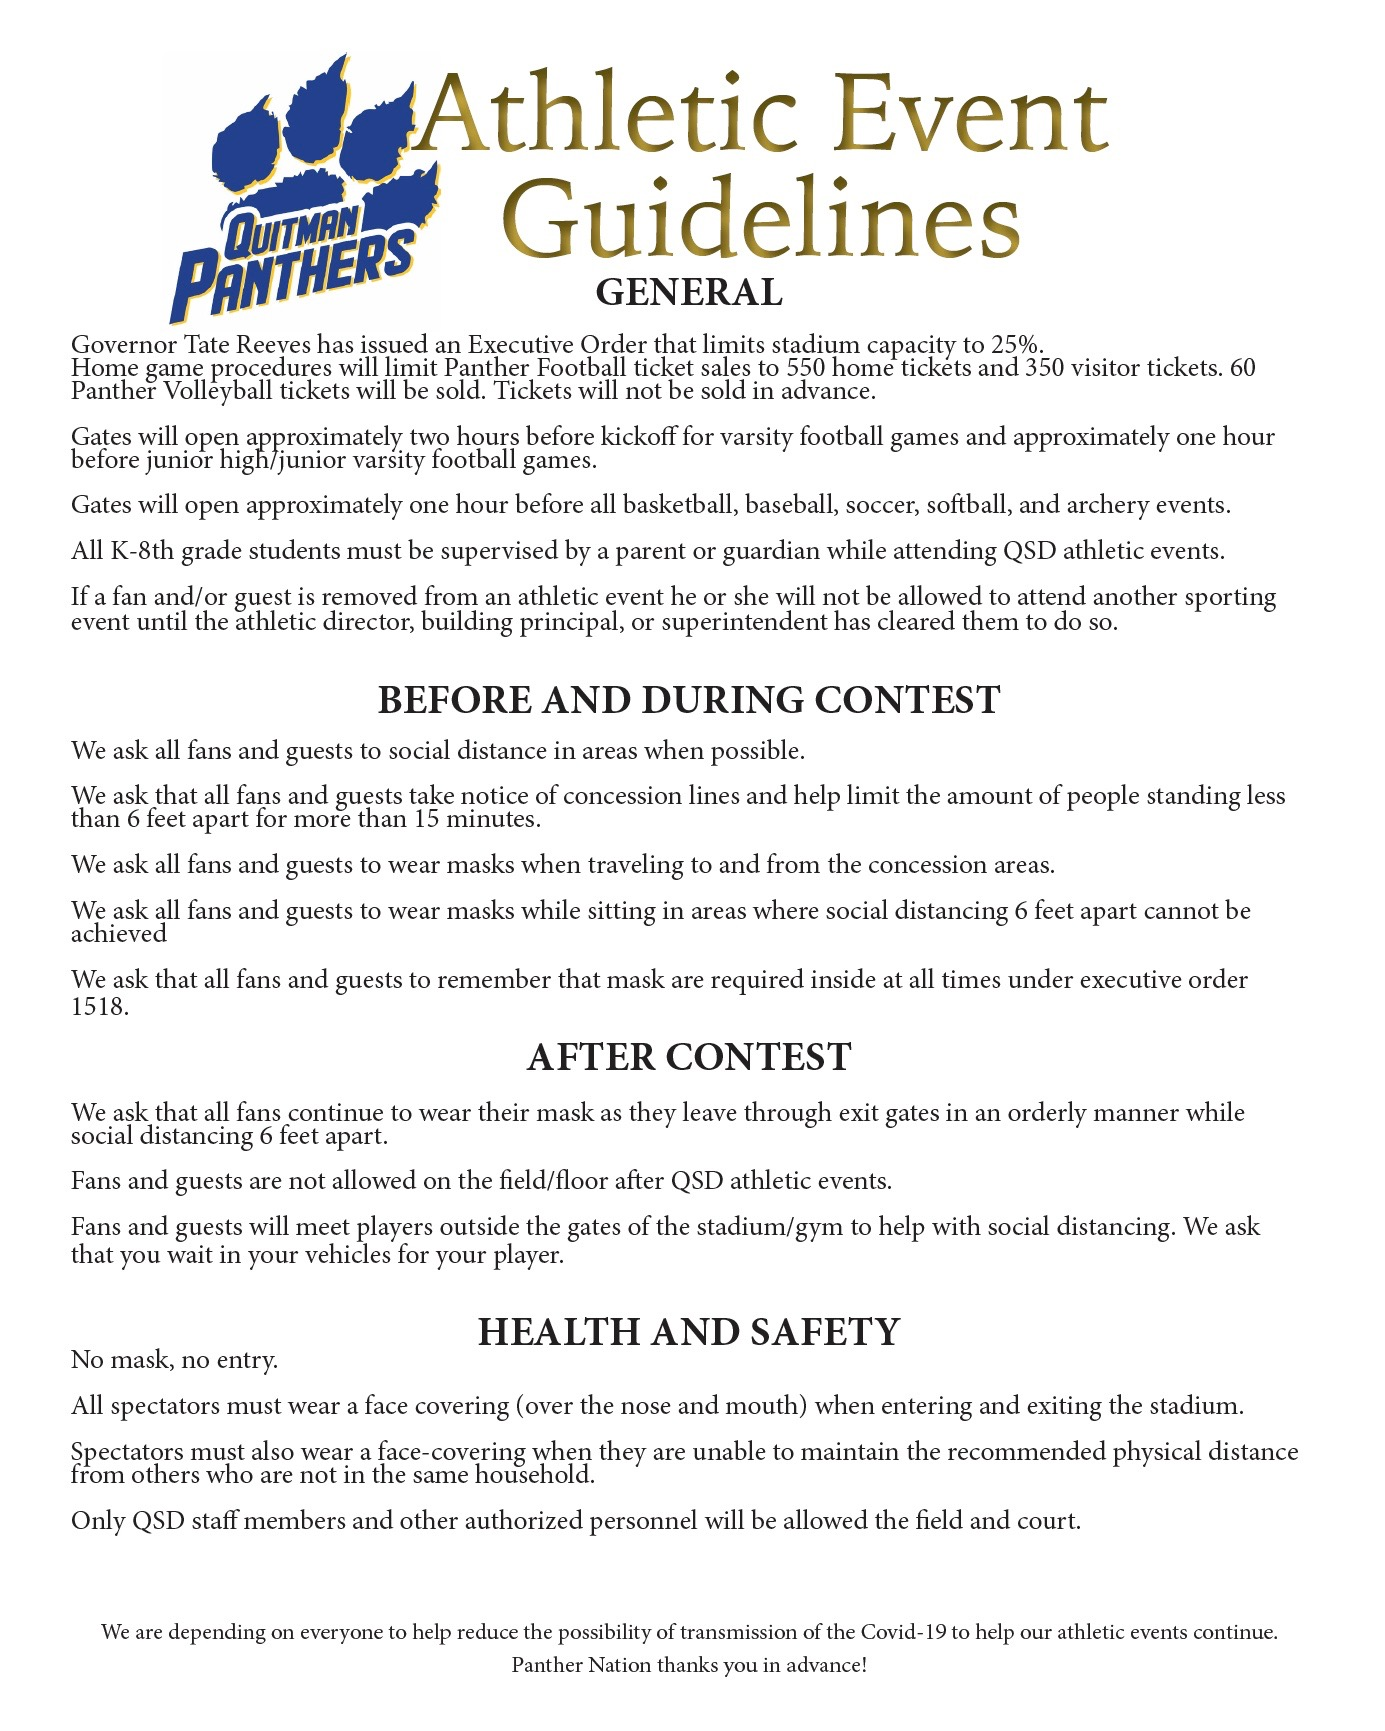 This is a screenshot of the Panther Athletic Event Guidelines.